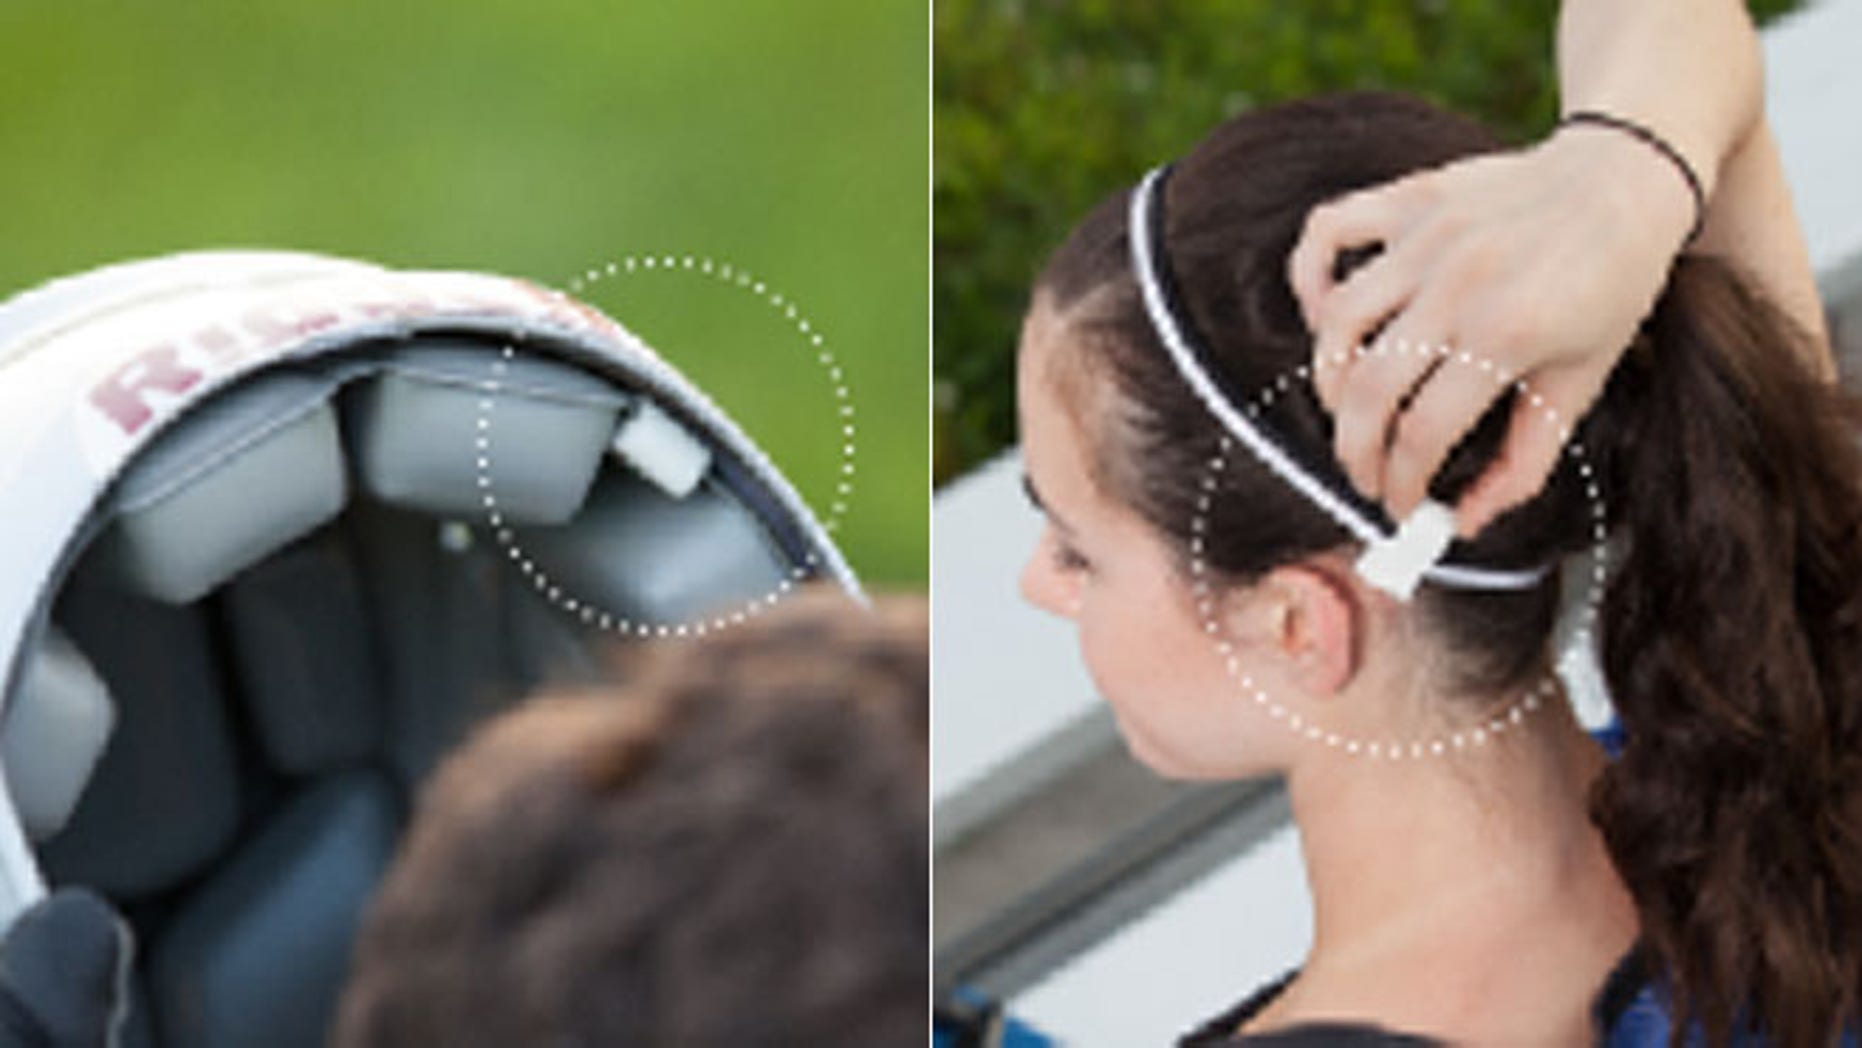 The clip-on Jolt Sensor device, pictured above, is a small rubber clip designed to attach to any piece of head-worn equipment.